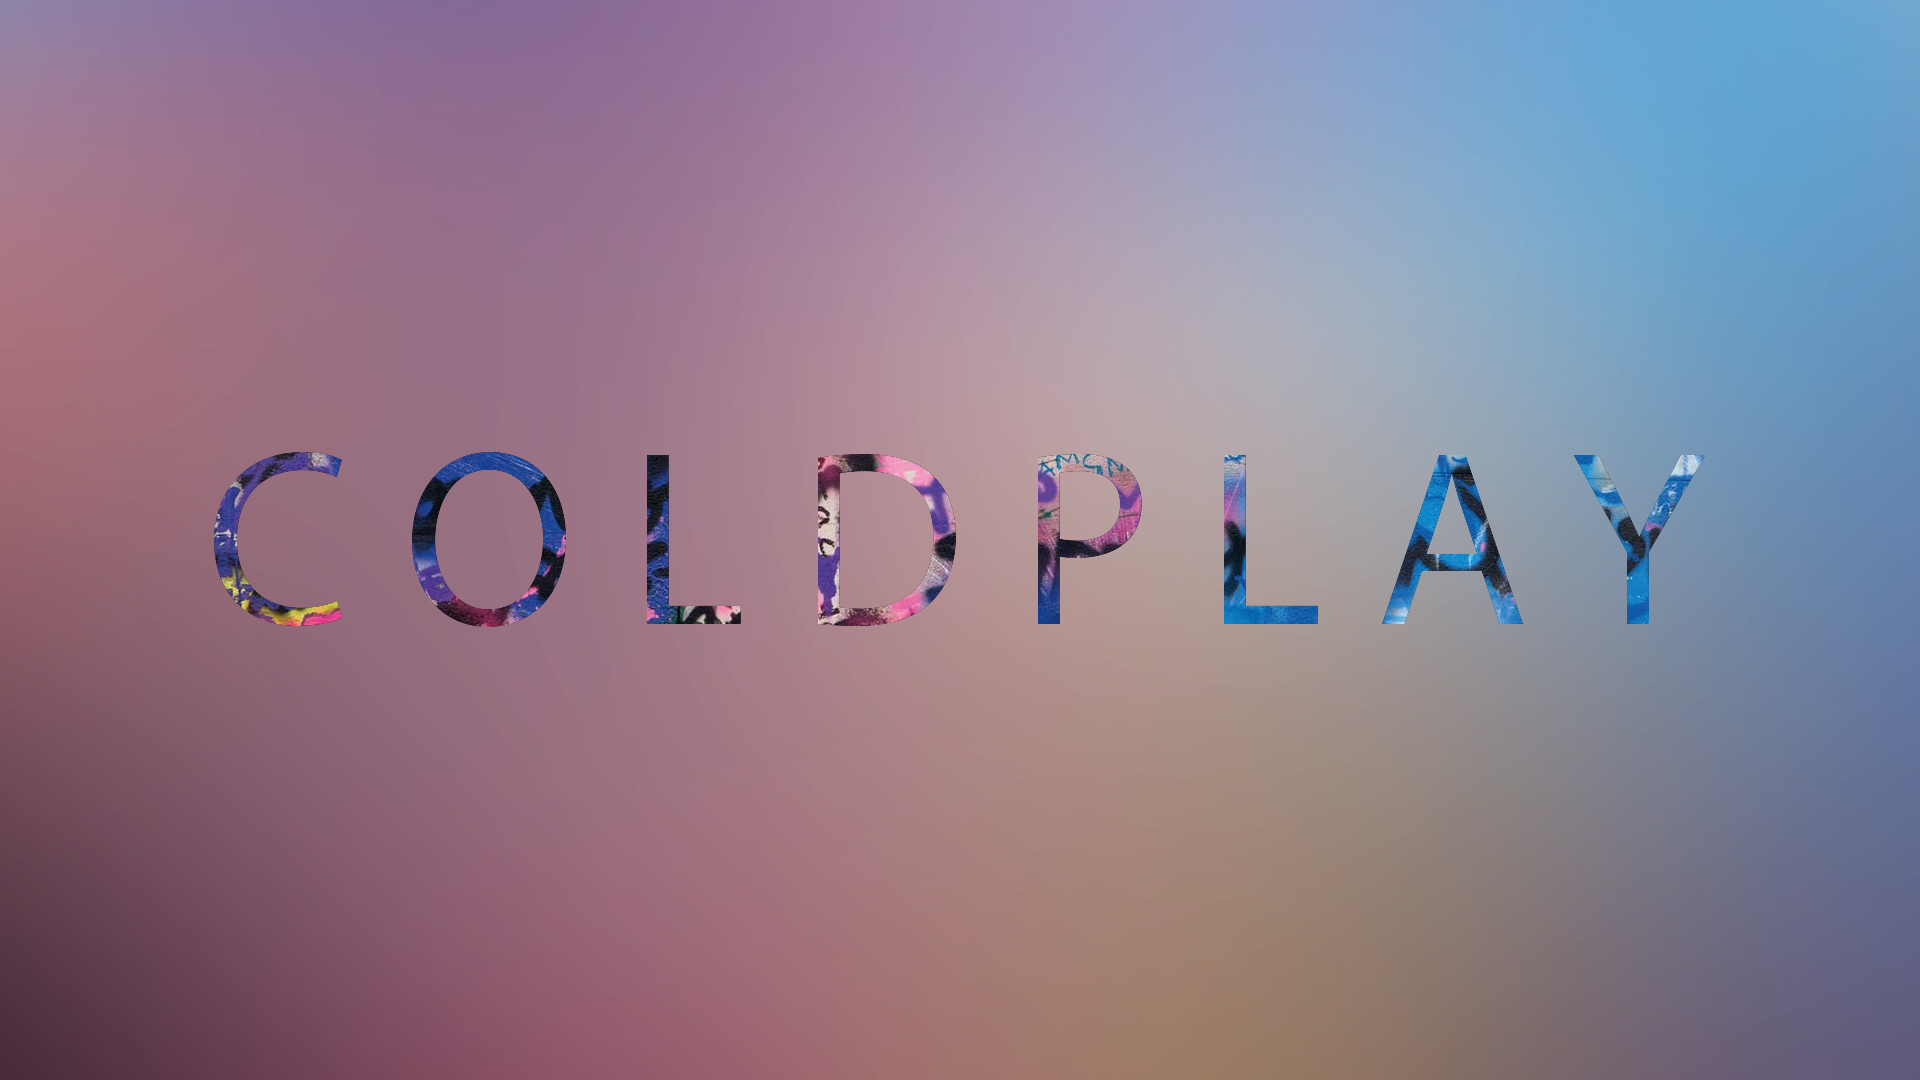 Coldplay HD Wallpapers